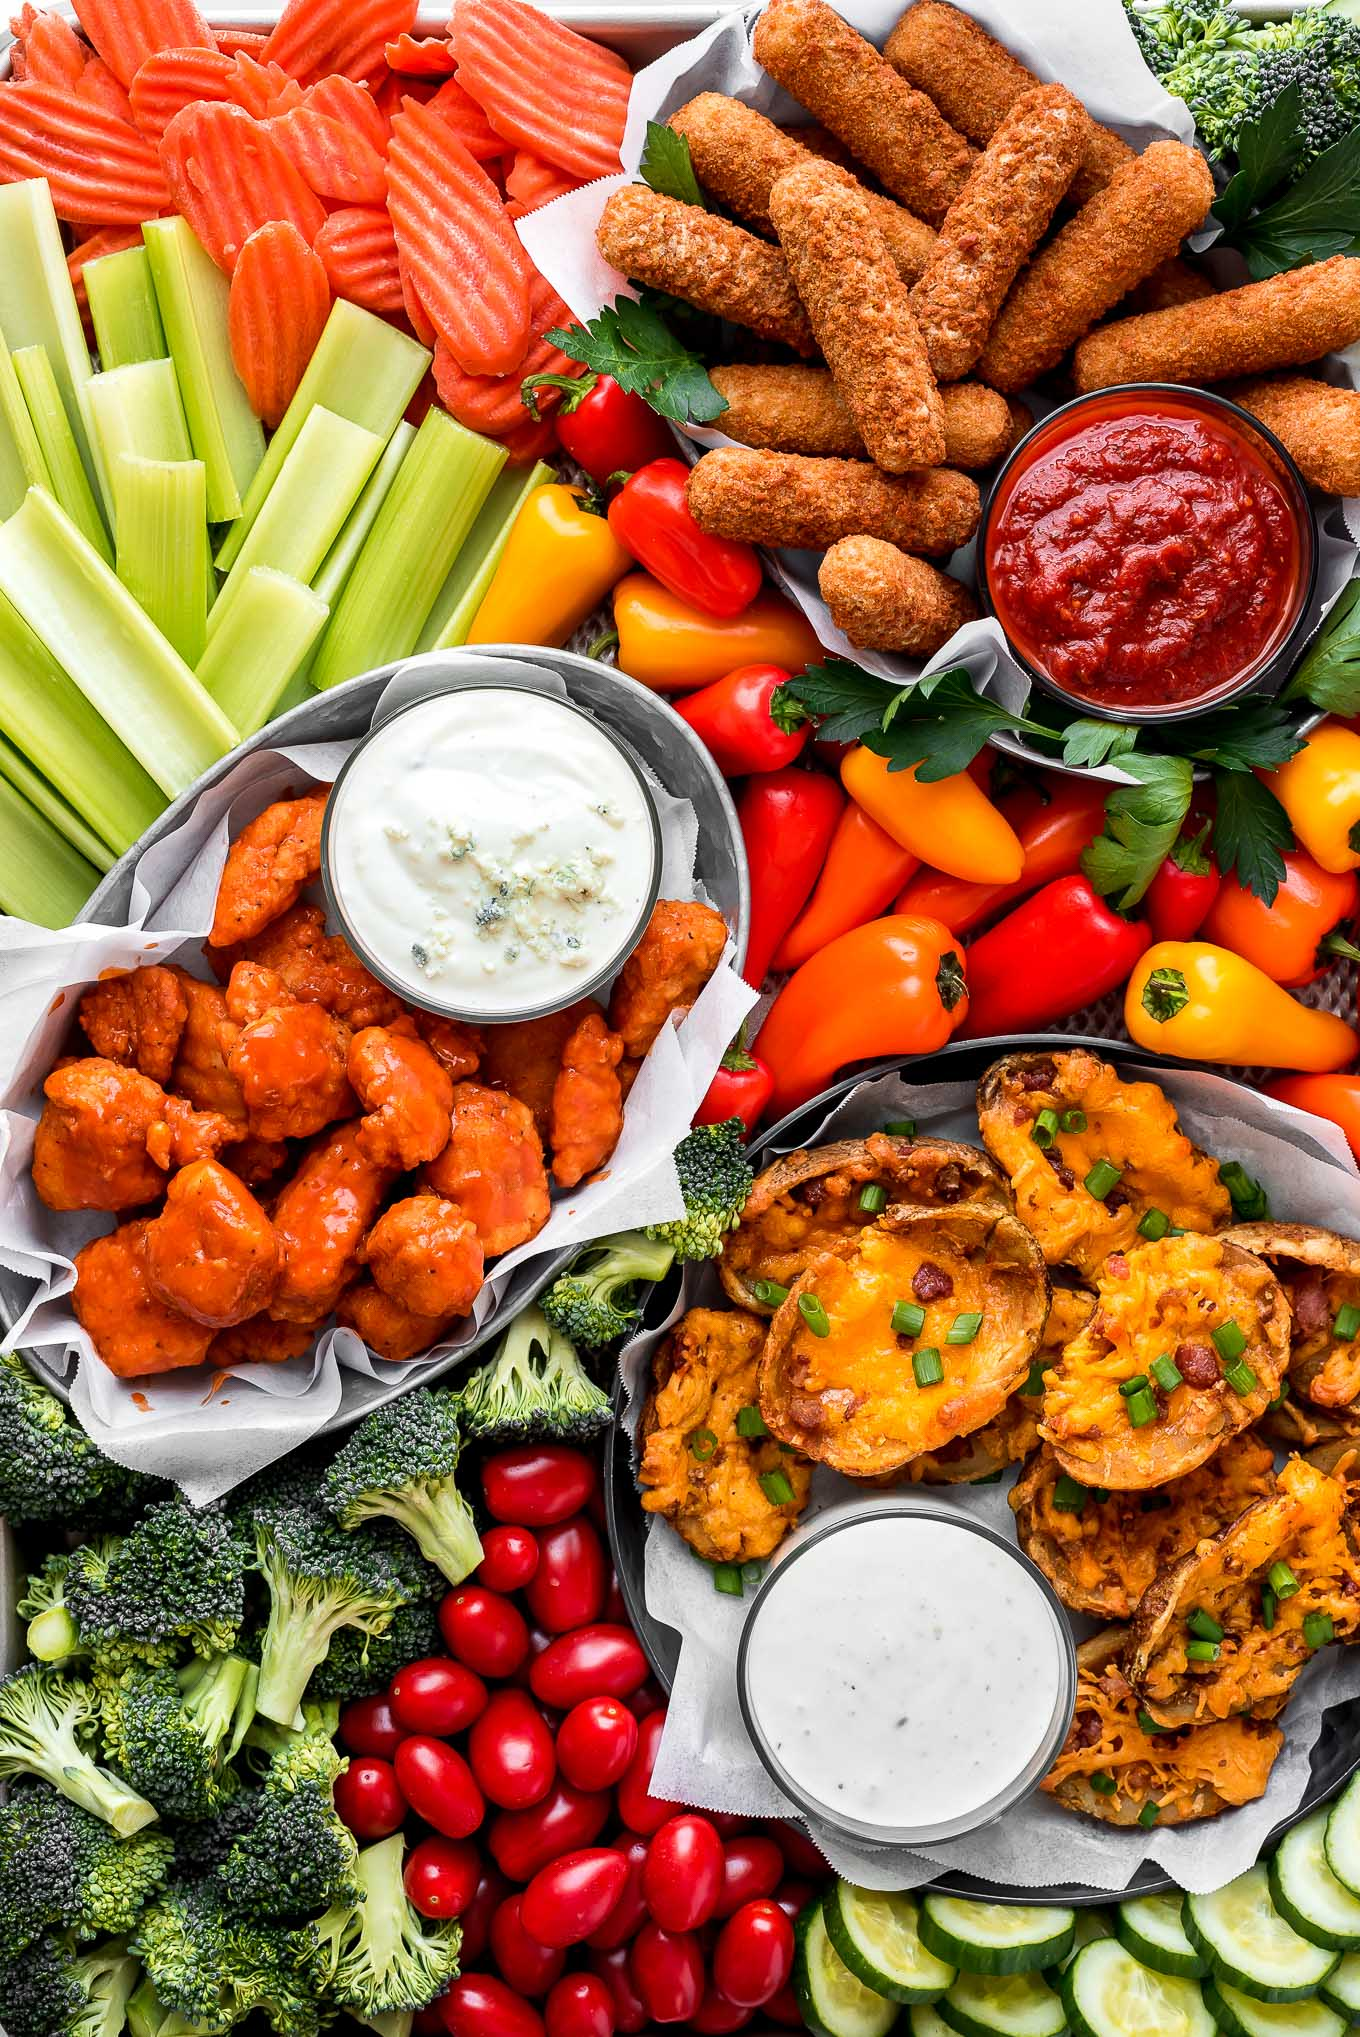 Closeup shot of a Super Bowl Snack Board full of fresh vegetables, mozzarella sticks, buffalo, chicken, potato skins, and dipping sauces.